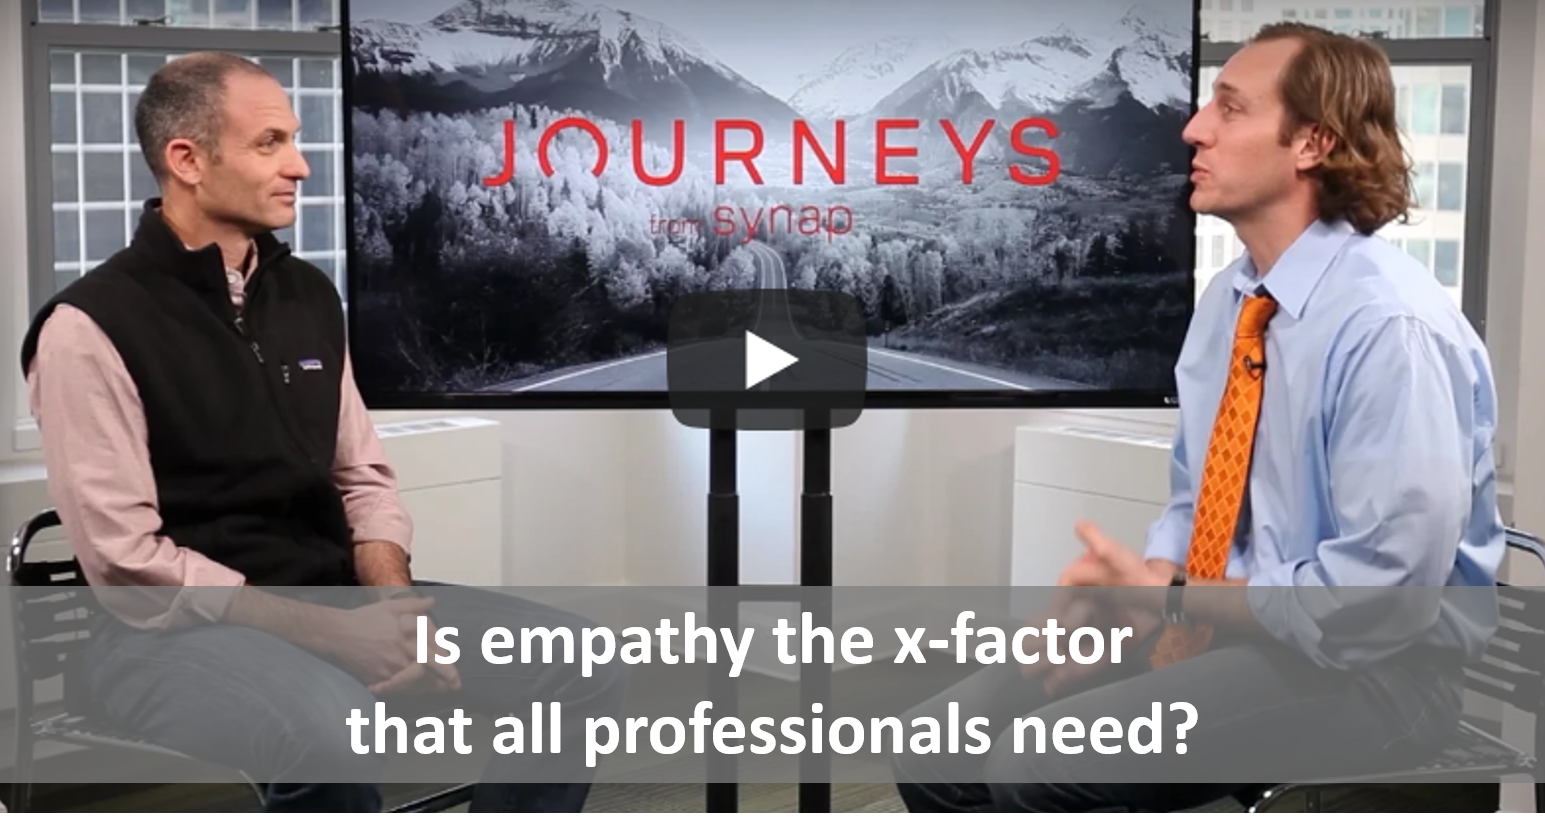 Why all professionals need empathy